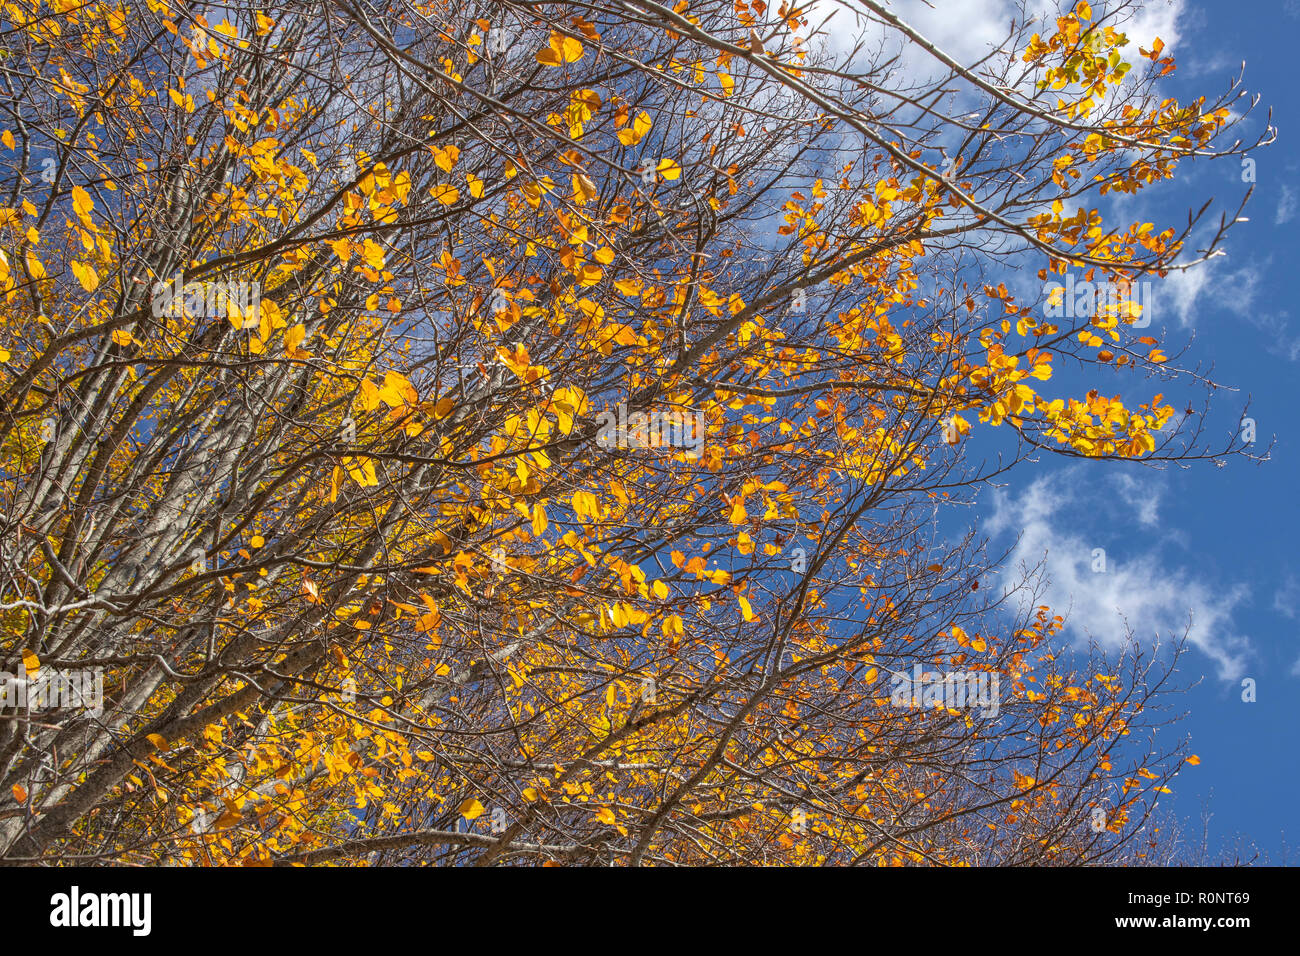 Branches of a tree with golden autumn leaves against a blue sky with clouds. Greece - Stock Image